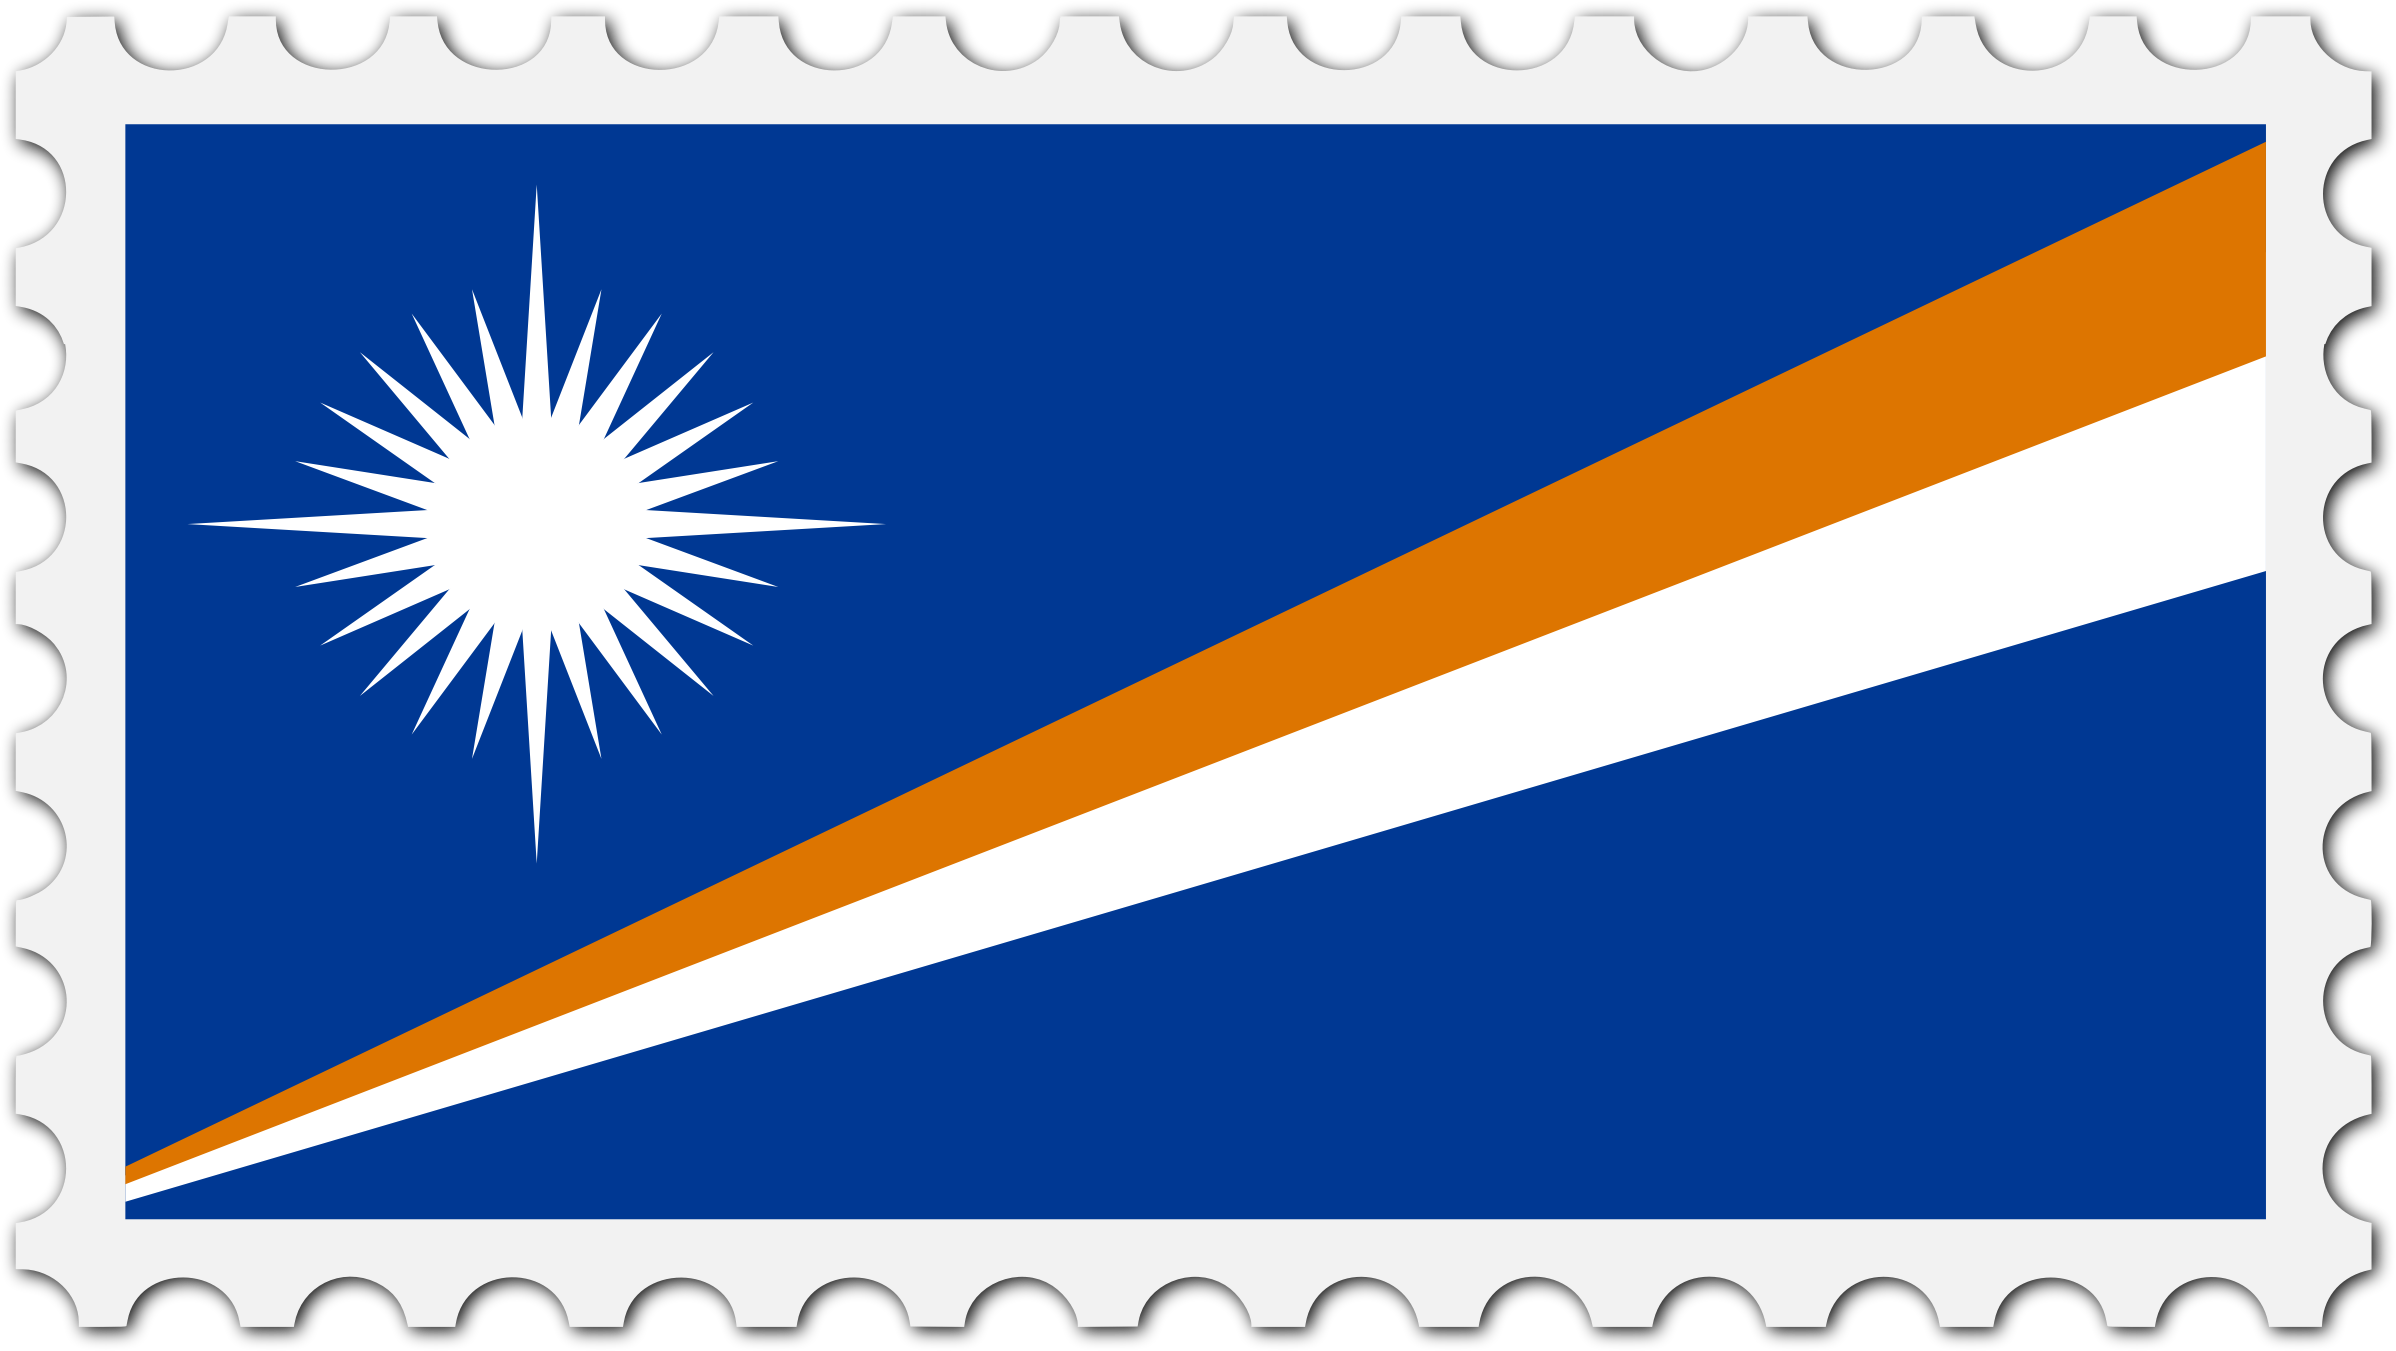 Marshall Islands flag stamp by Firkin